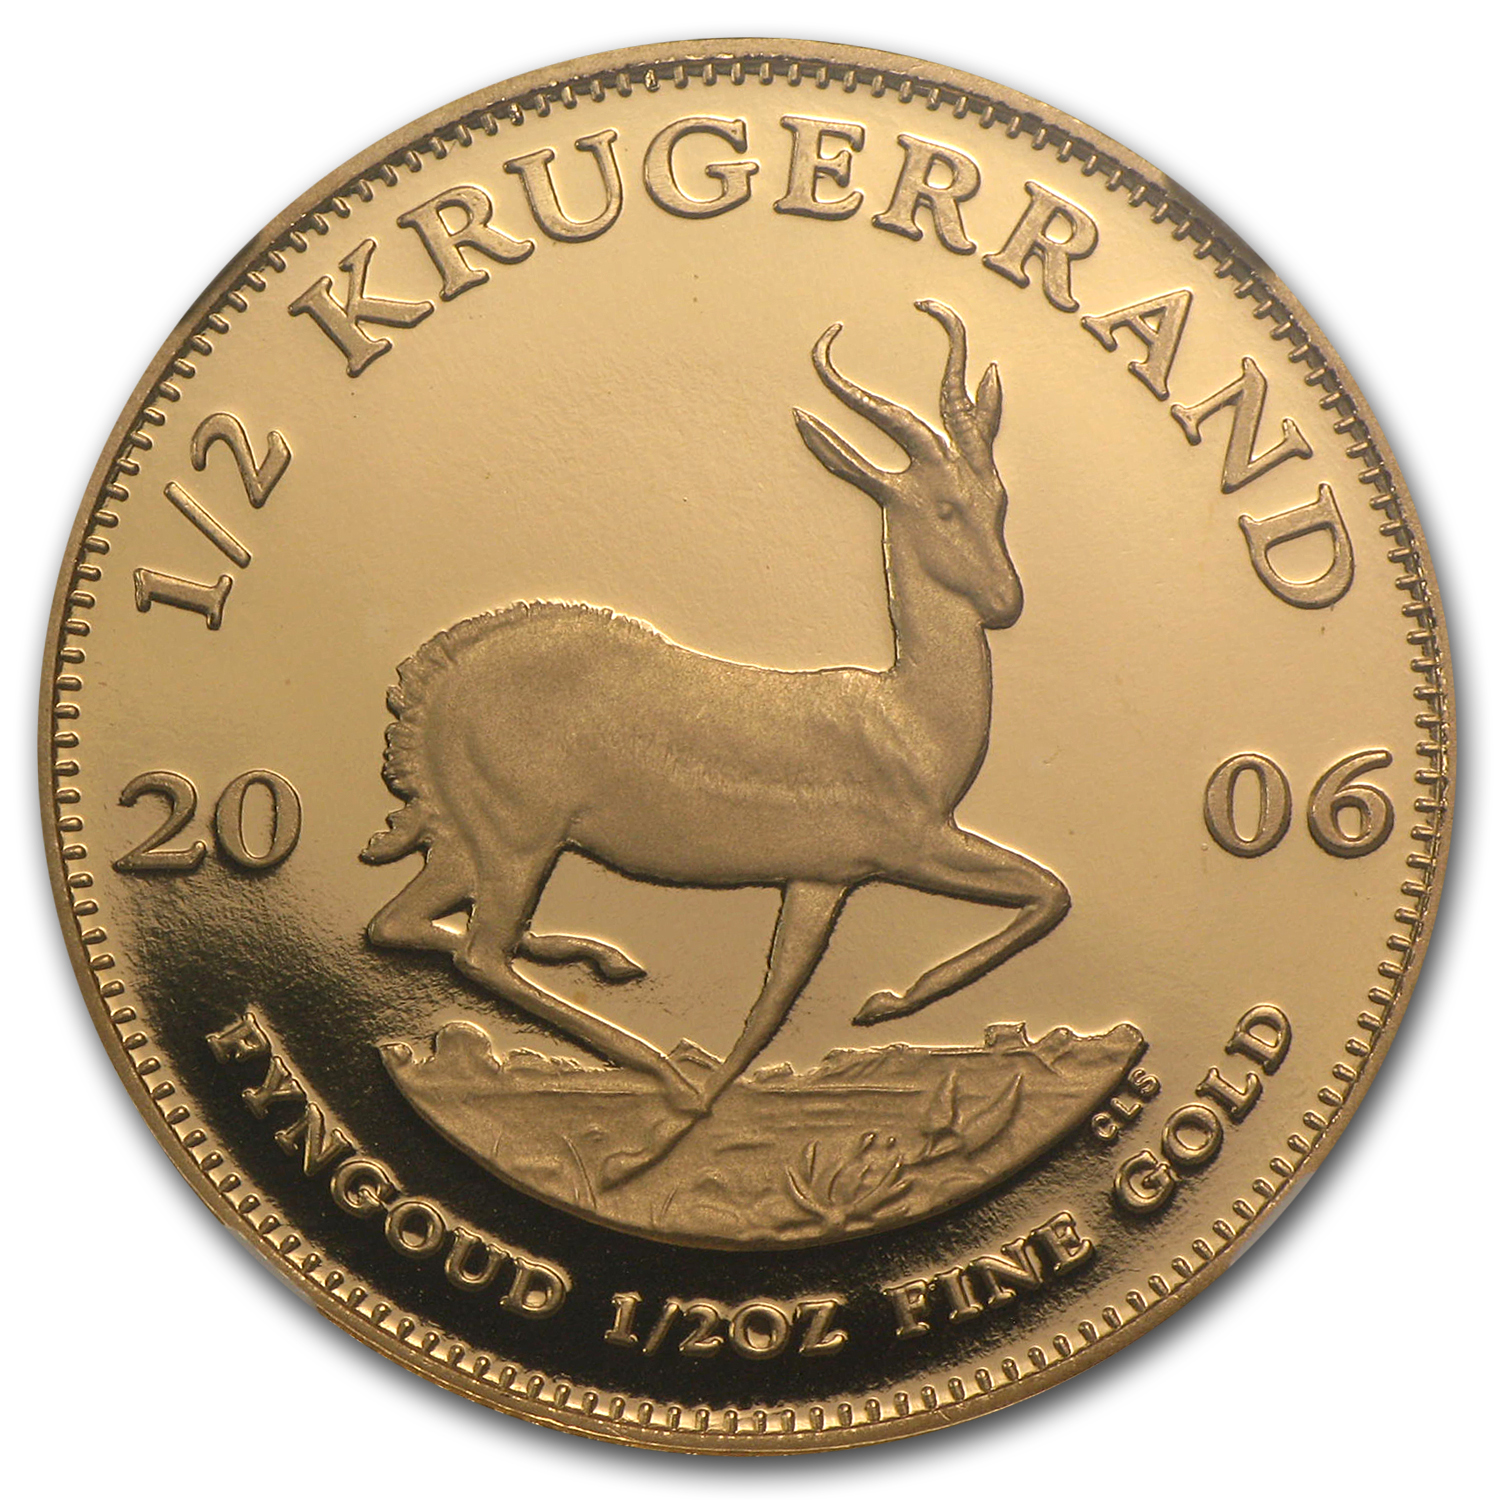 2006 South Africa 1/2 oz Gold Krugerrand PF-69 NGC